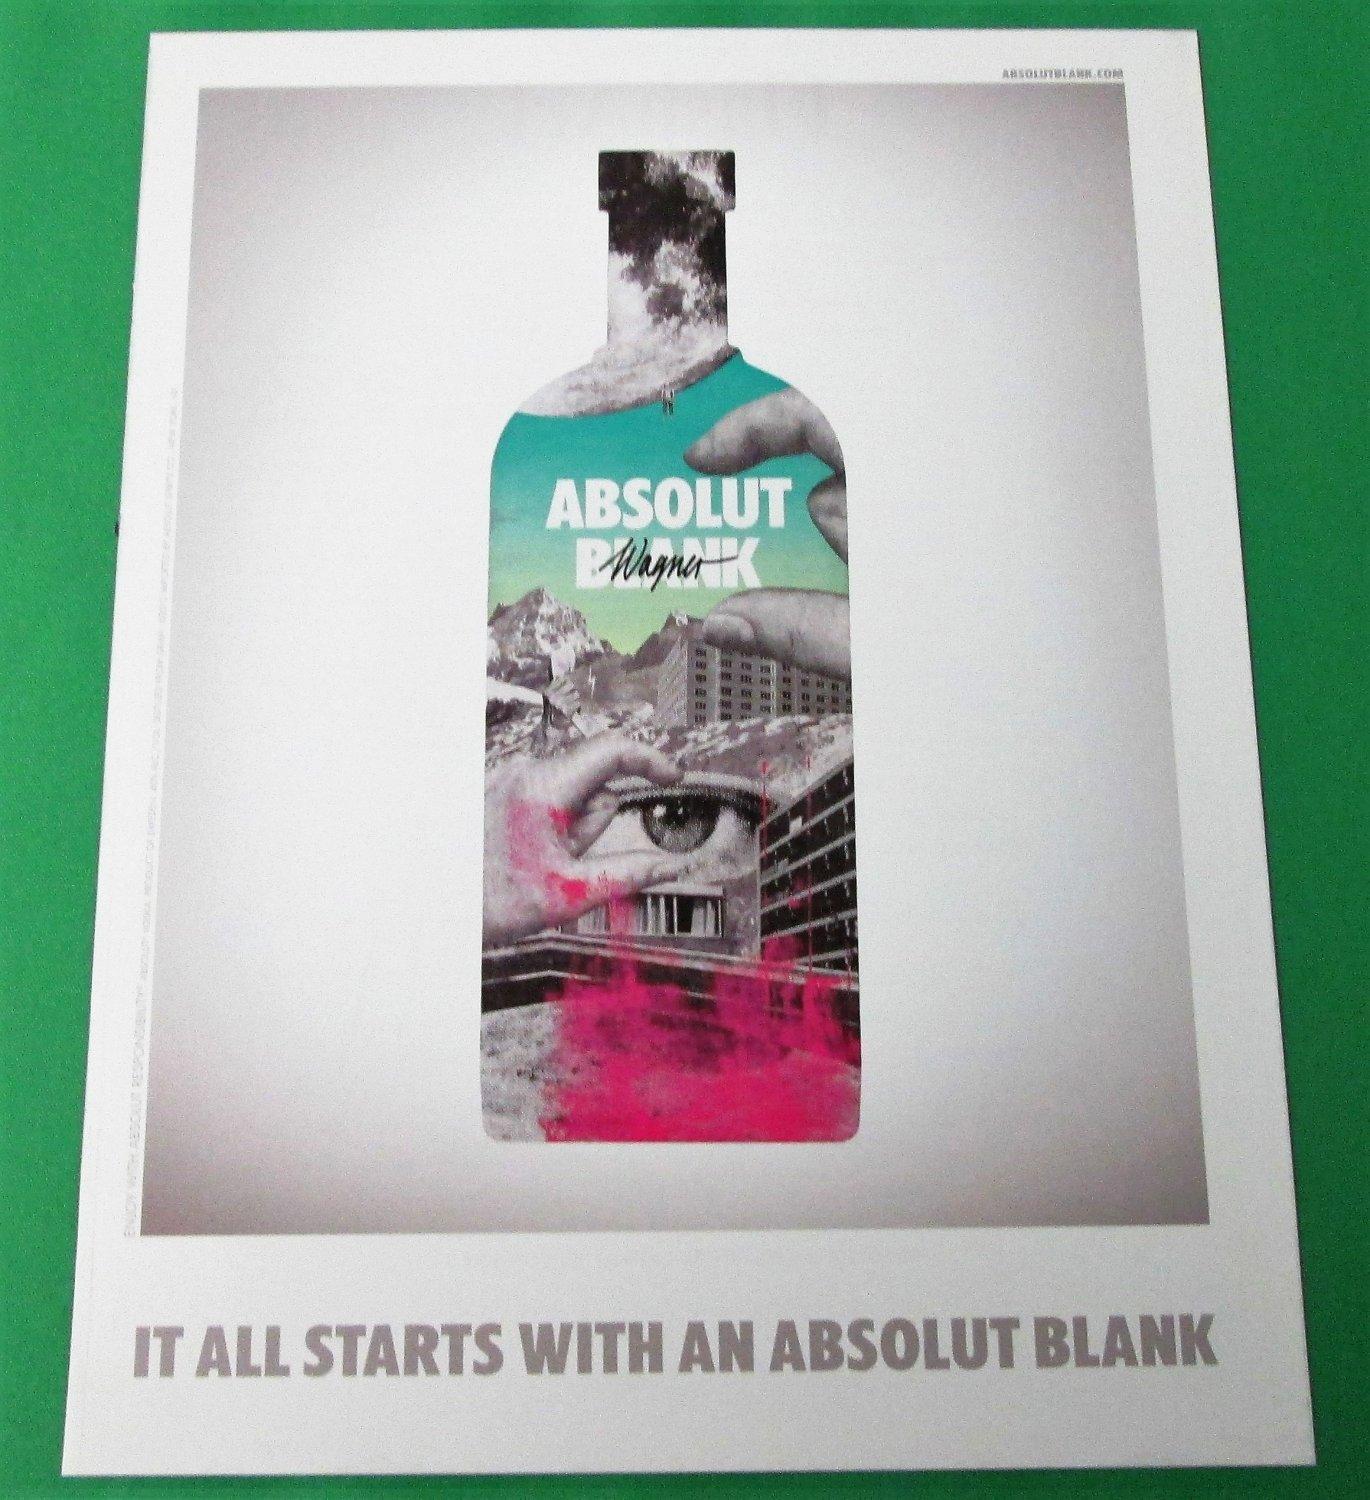 IT ALL STARTS WITH AN ABSOLUT BLANK Italian Vodka Magazine Ad WAGNER VERSION